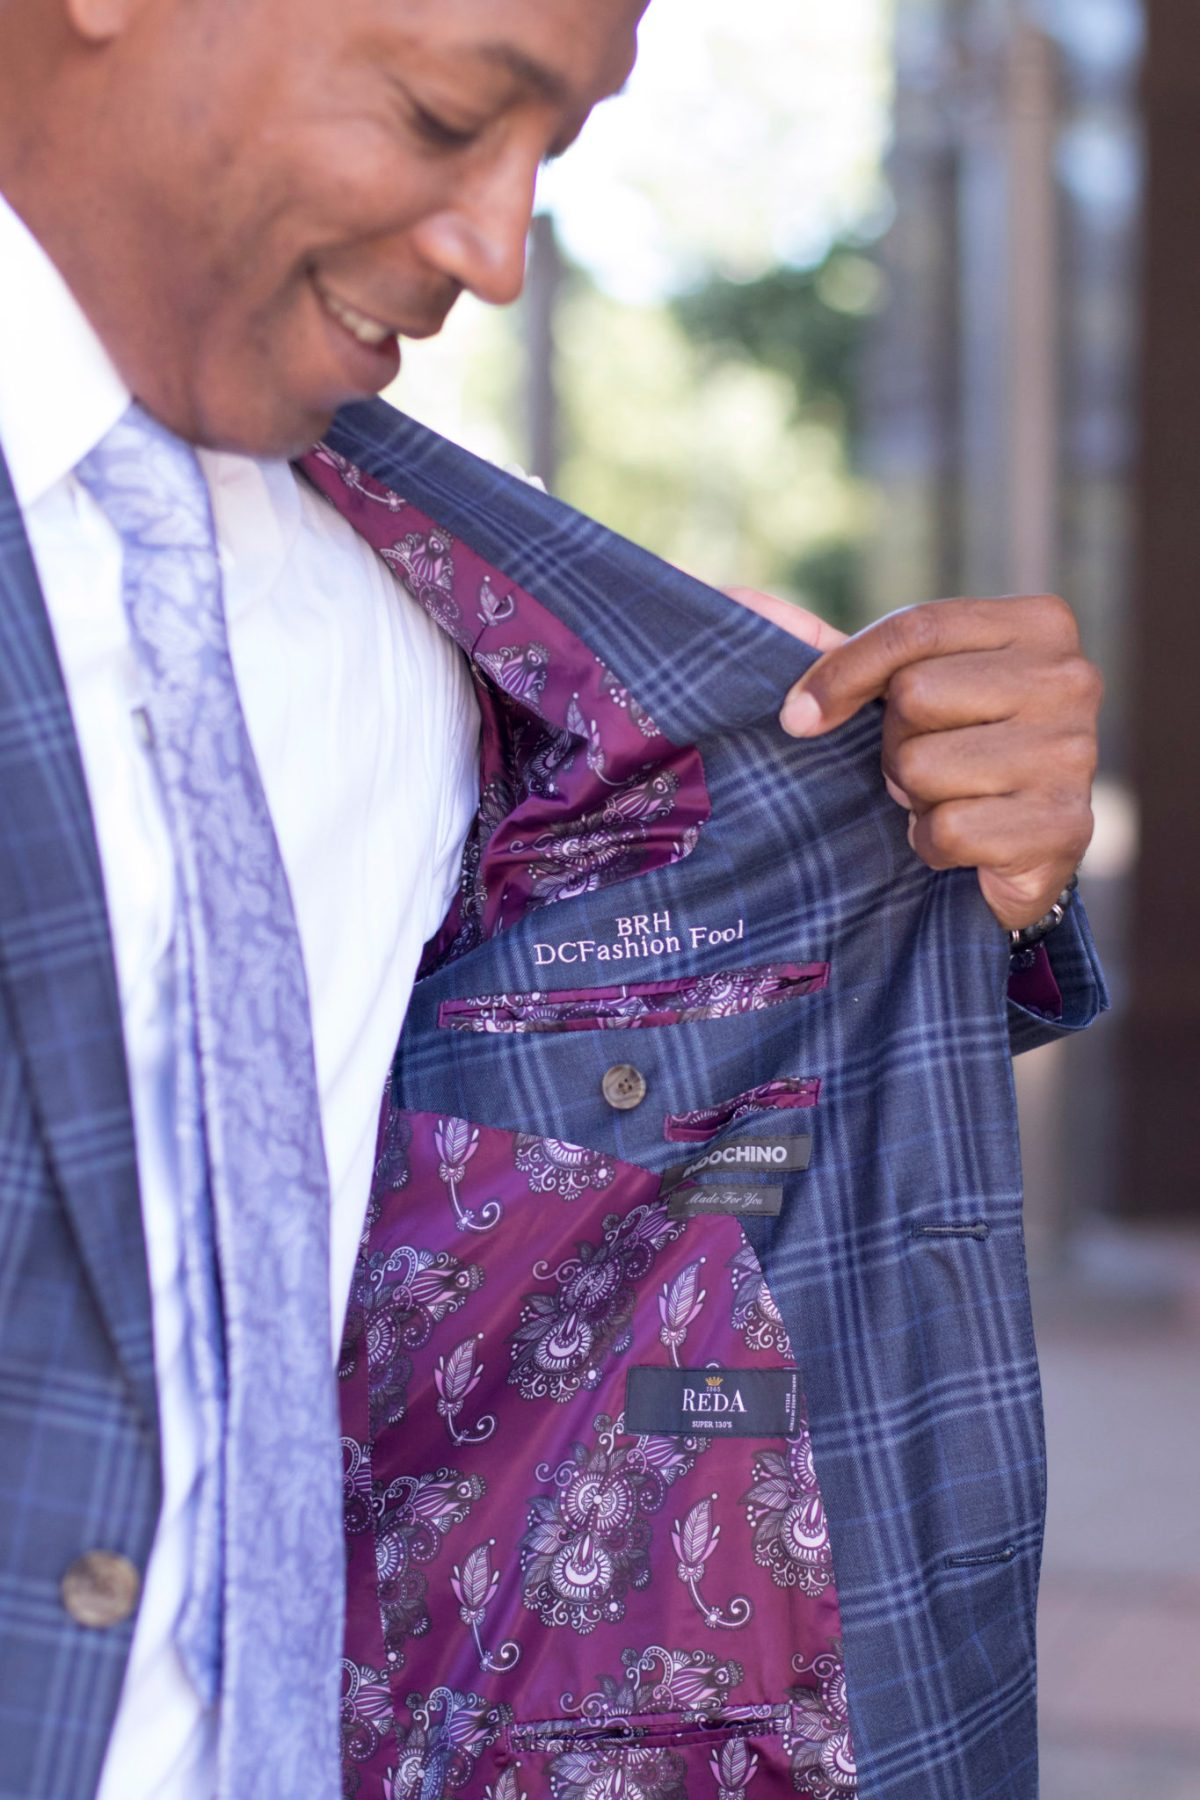 Details of Indochino lining